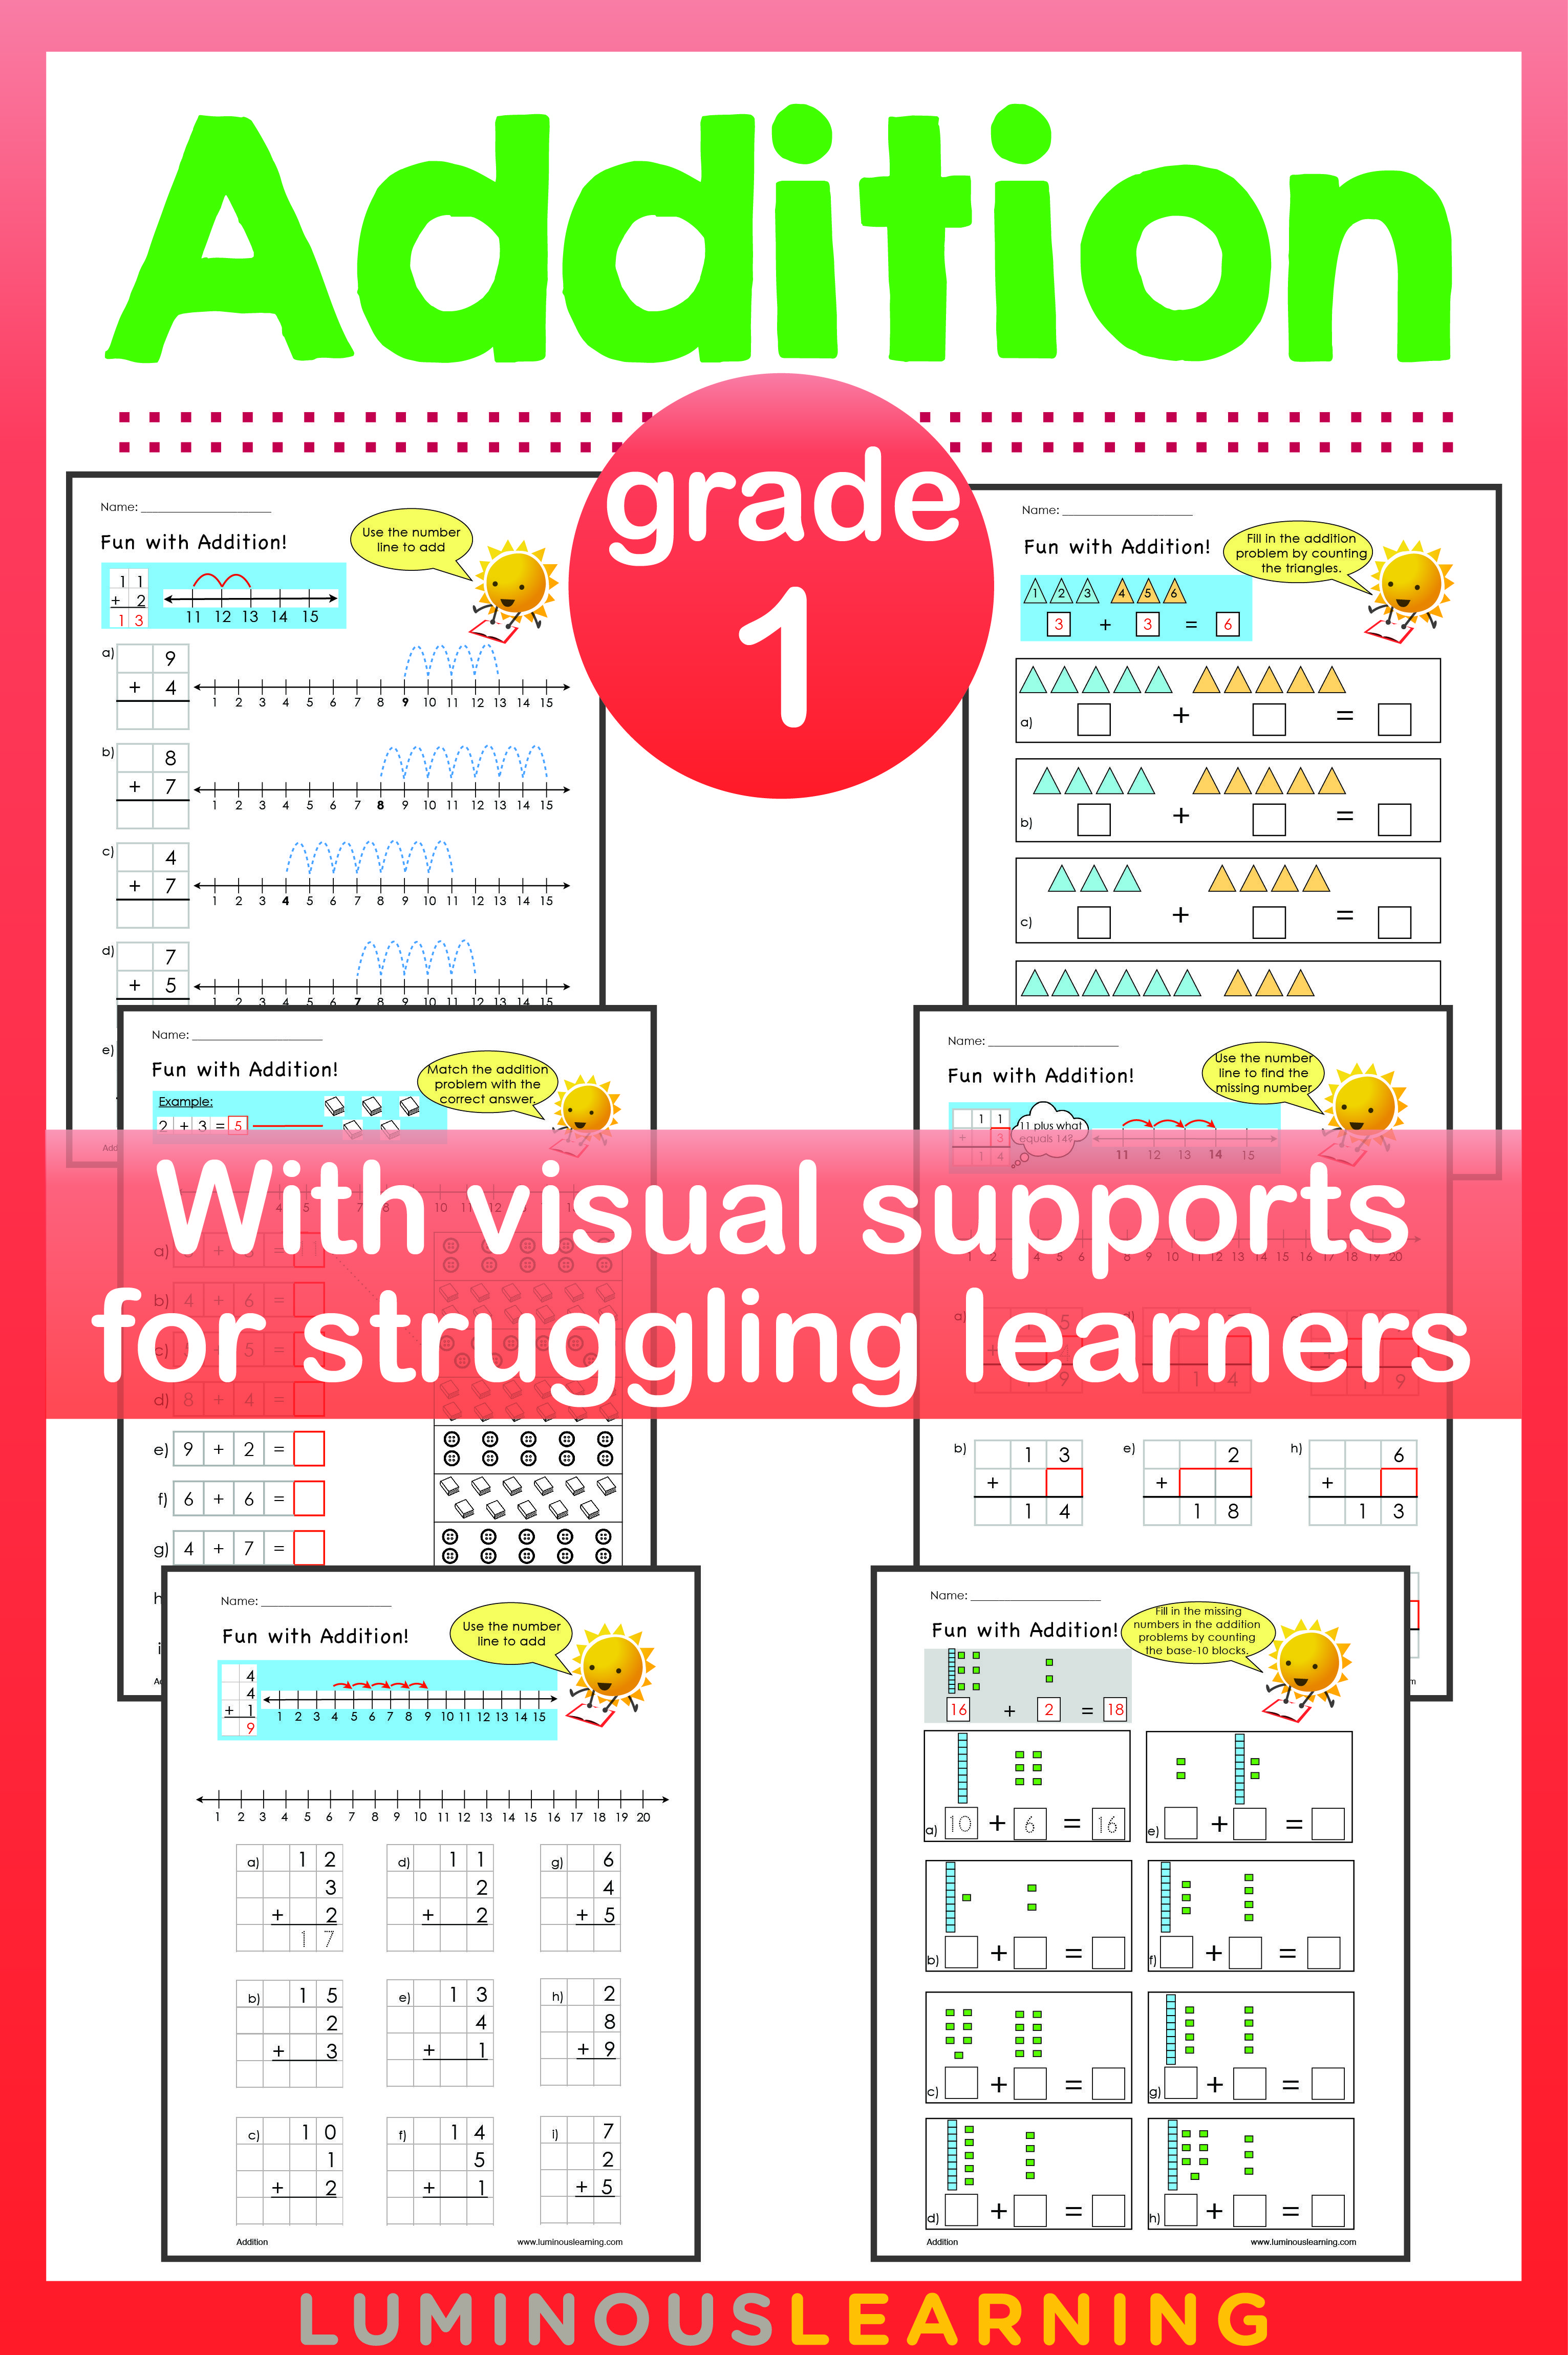 Luminous Learning Grade 1 Addition Workbook Provides Math